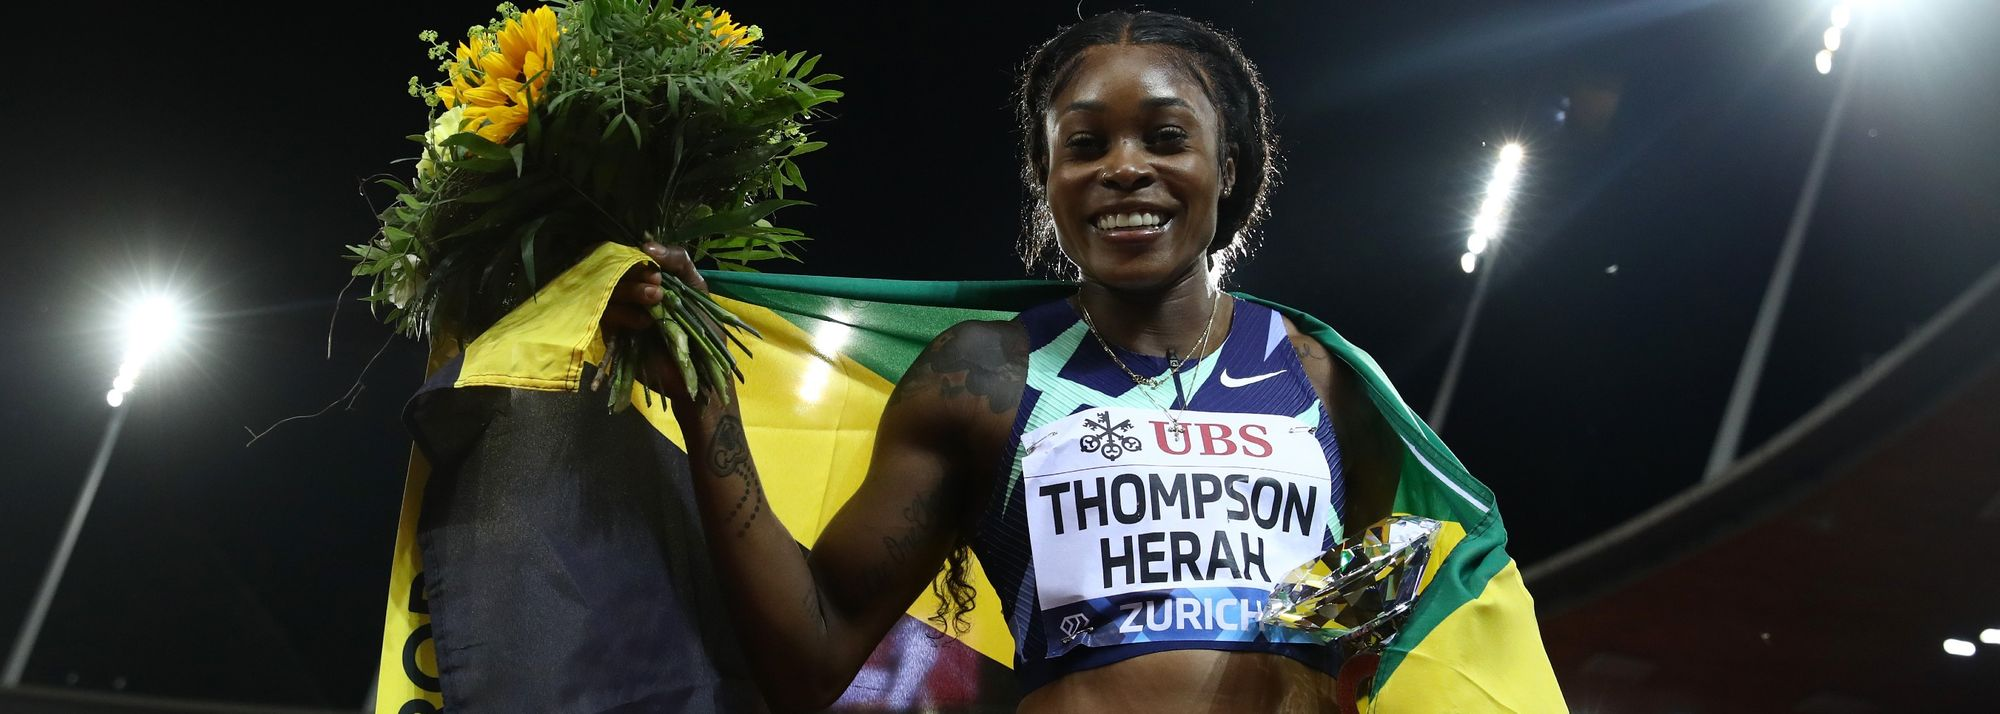 Jamaican sprint star Elaine Thompson-Herah brought an incredible season to a close with yet another record-breaking performance at the Wanda Diamond League final in Zurich on Thursday (9).